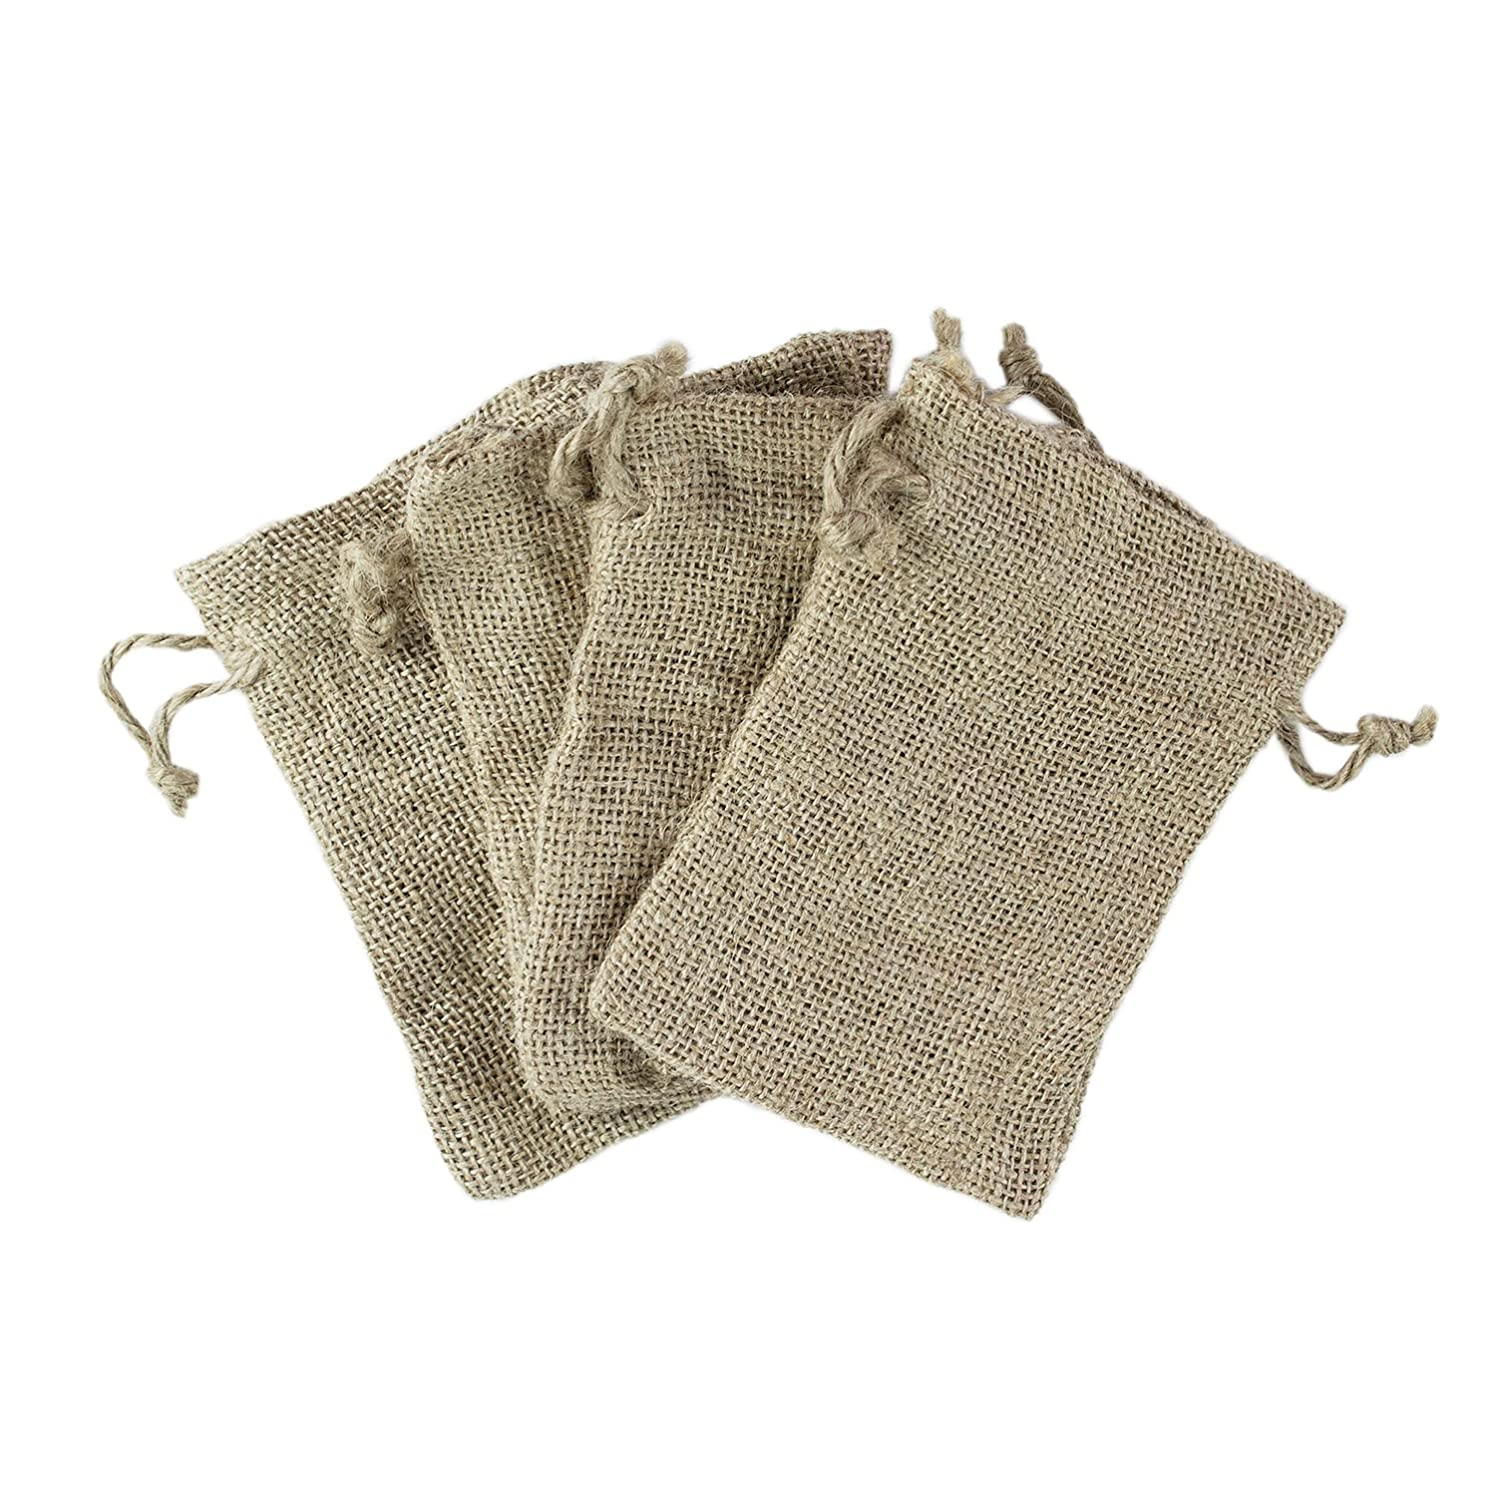 Super Z Outlet Natural Color Burlap Bag with Drawstring Closure for Arts & Crafts Projects, Gift Packaging, Presents, Snacks & Jewelry (50 Pack) (4